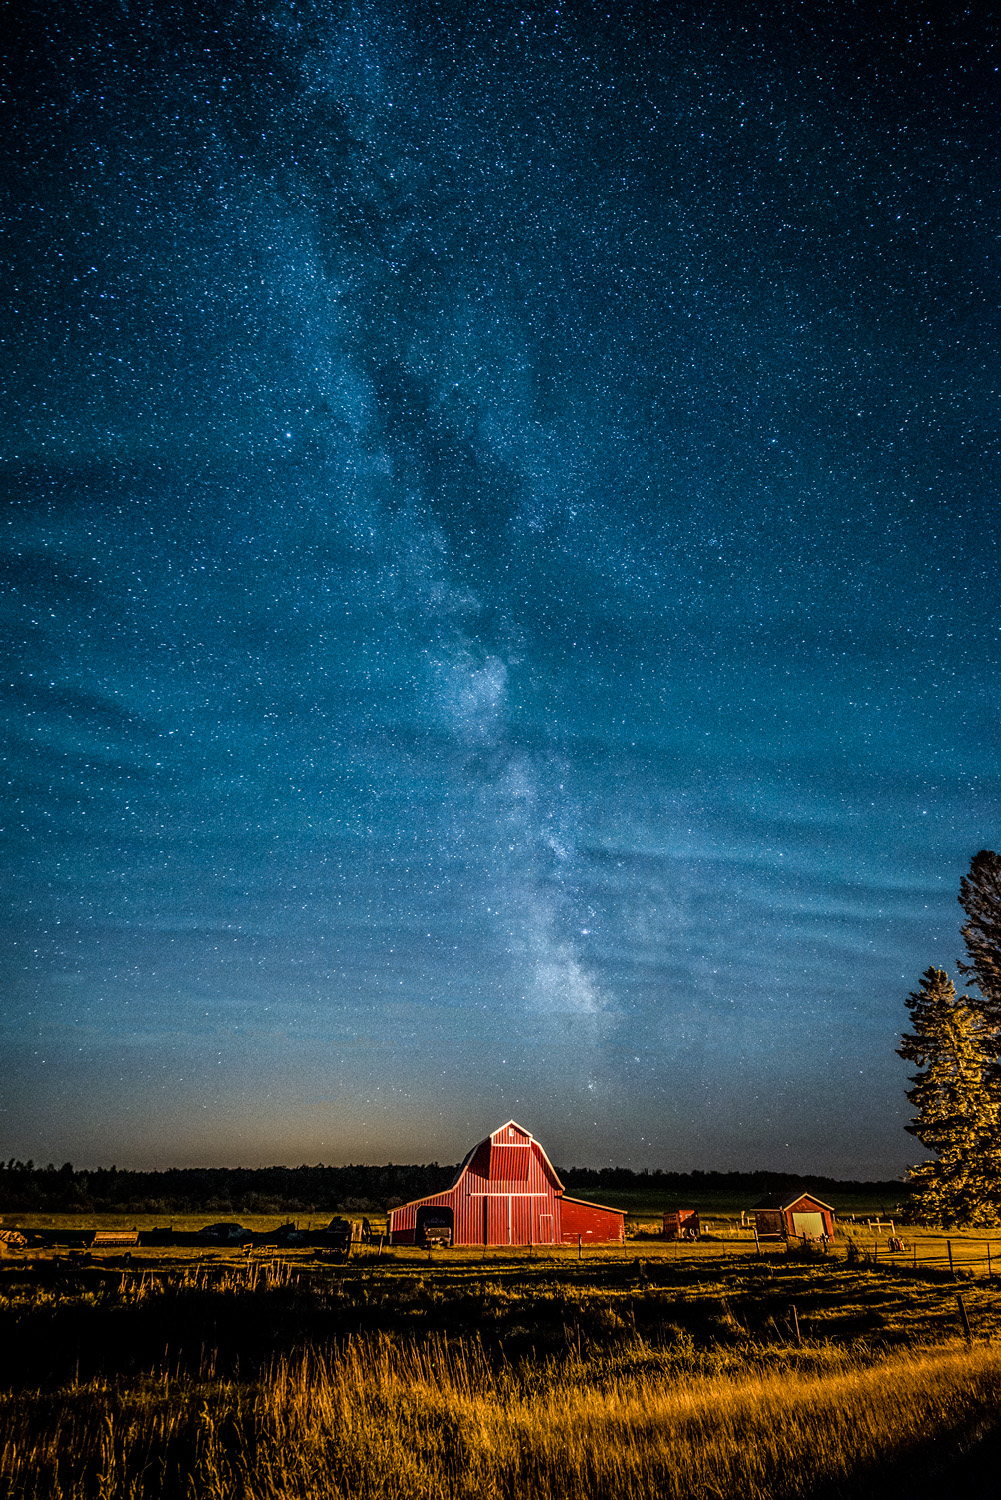 """Barn Under Milky Way"" by Dennis Zerwas, Jr."